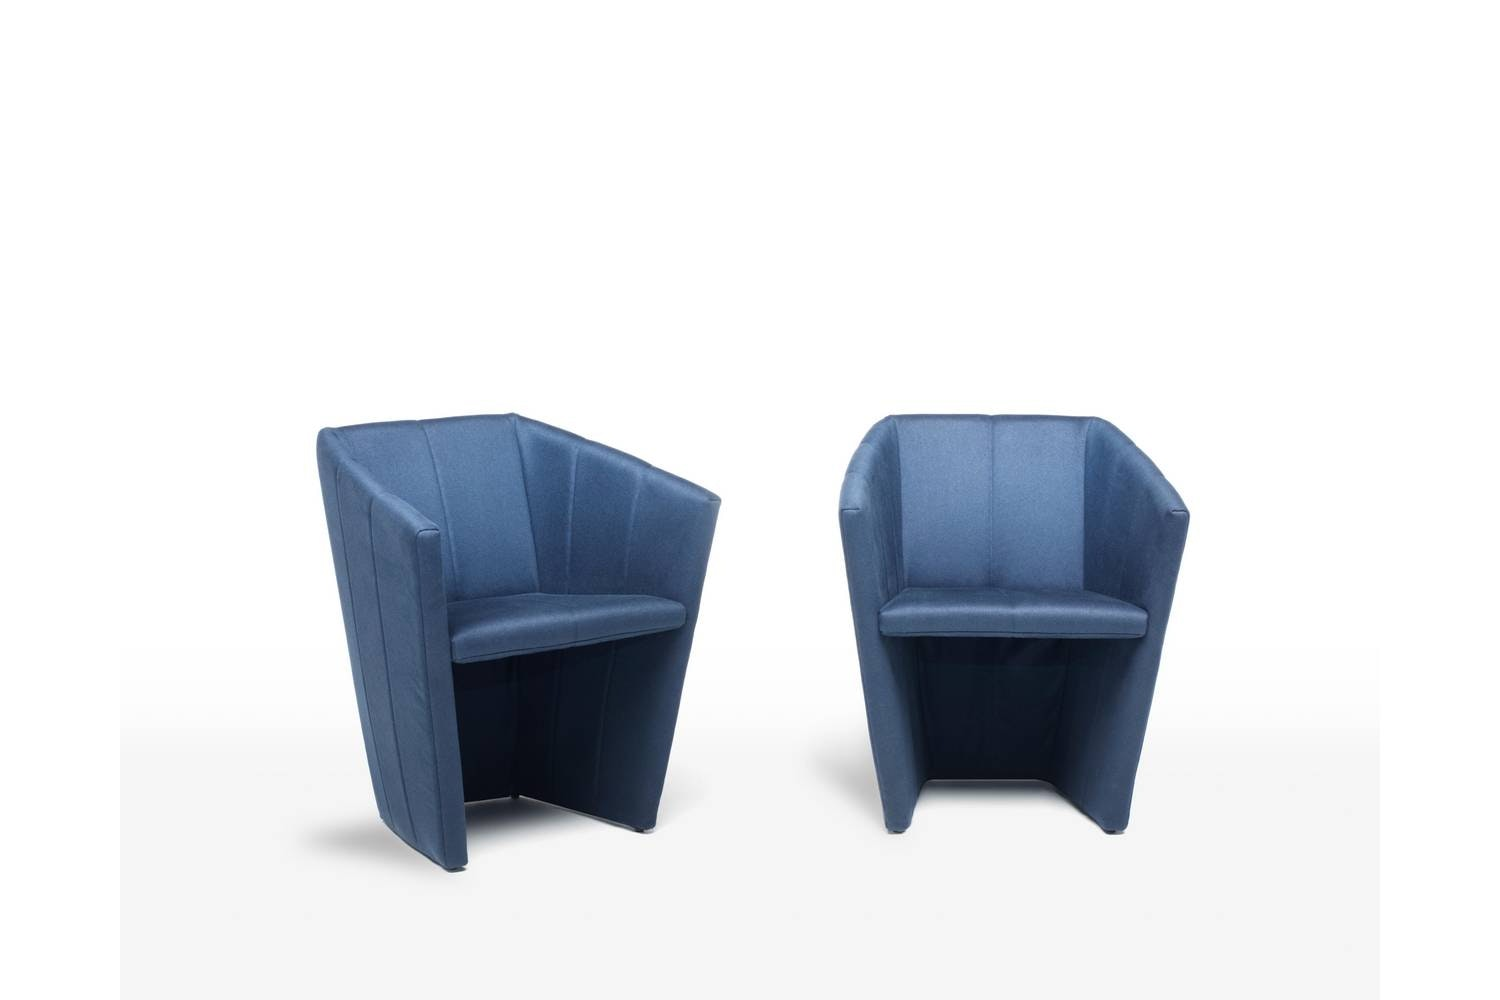 Fold Armchair by Victor Carrasco for Living Divani